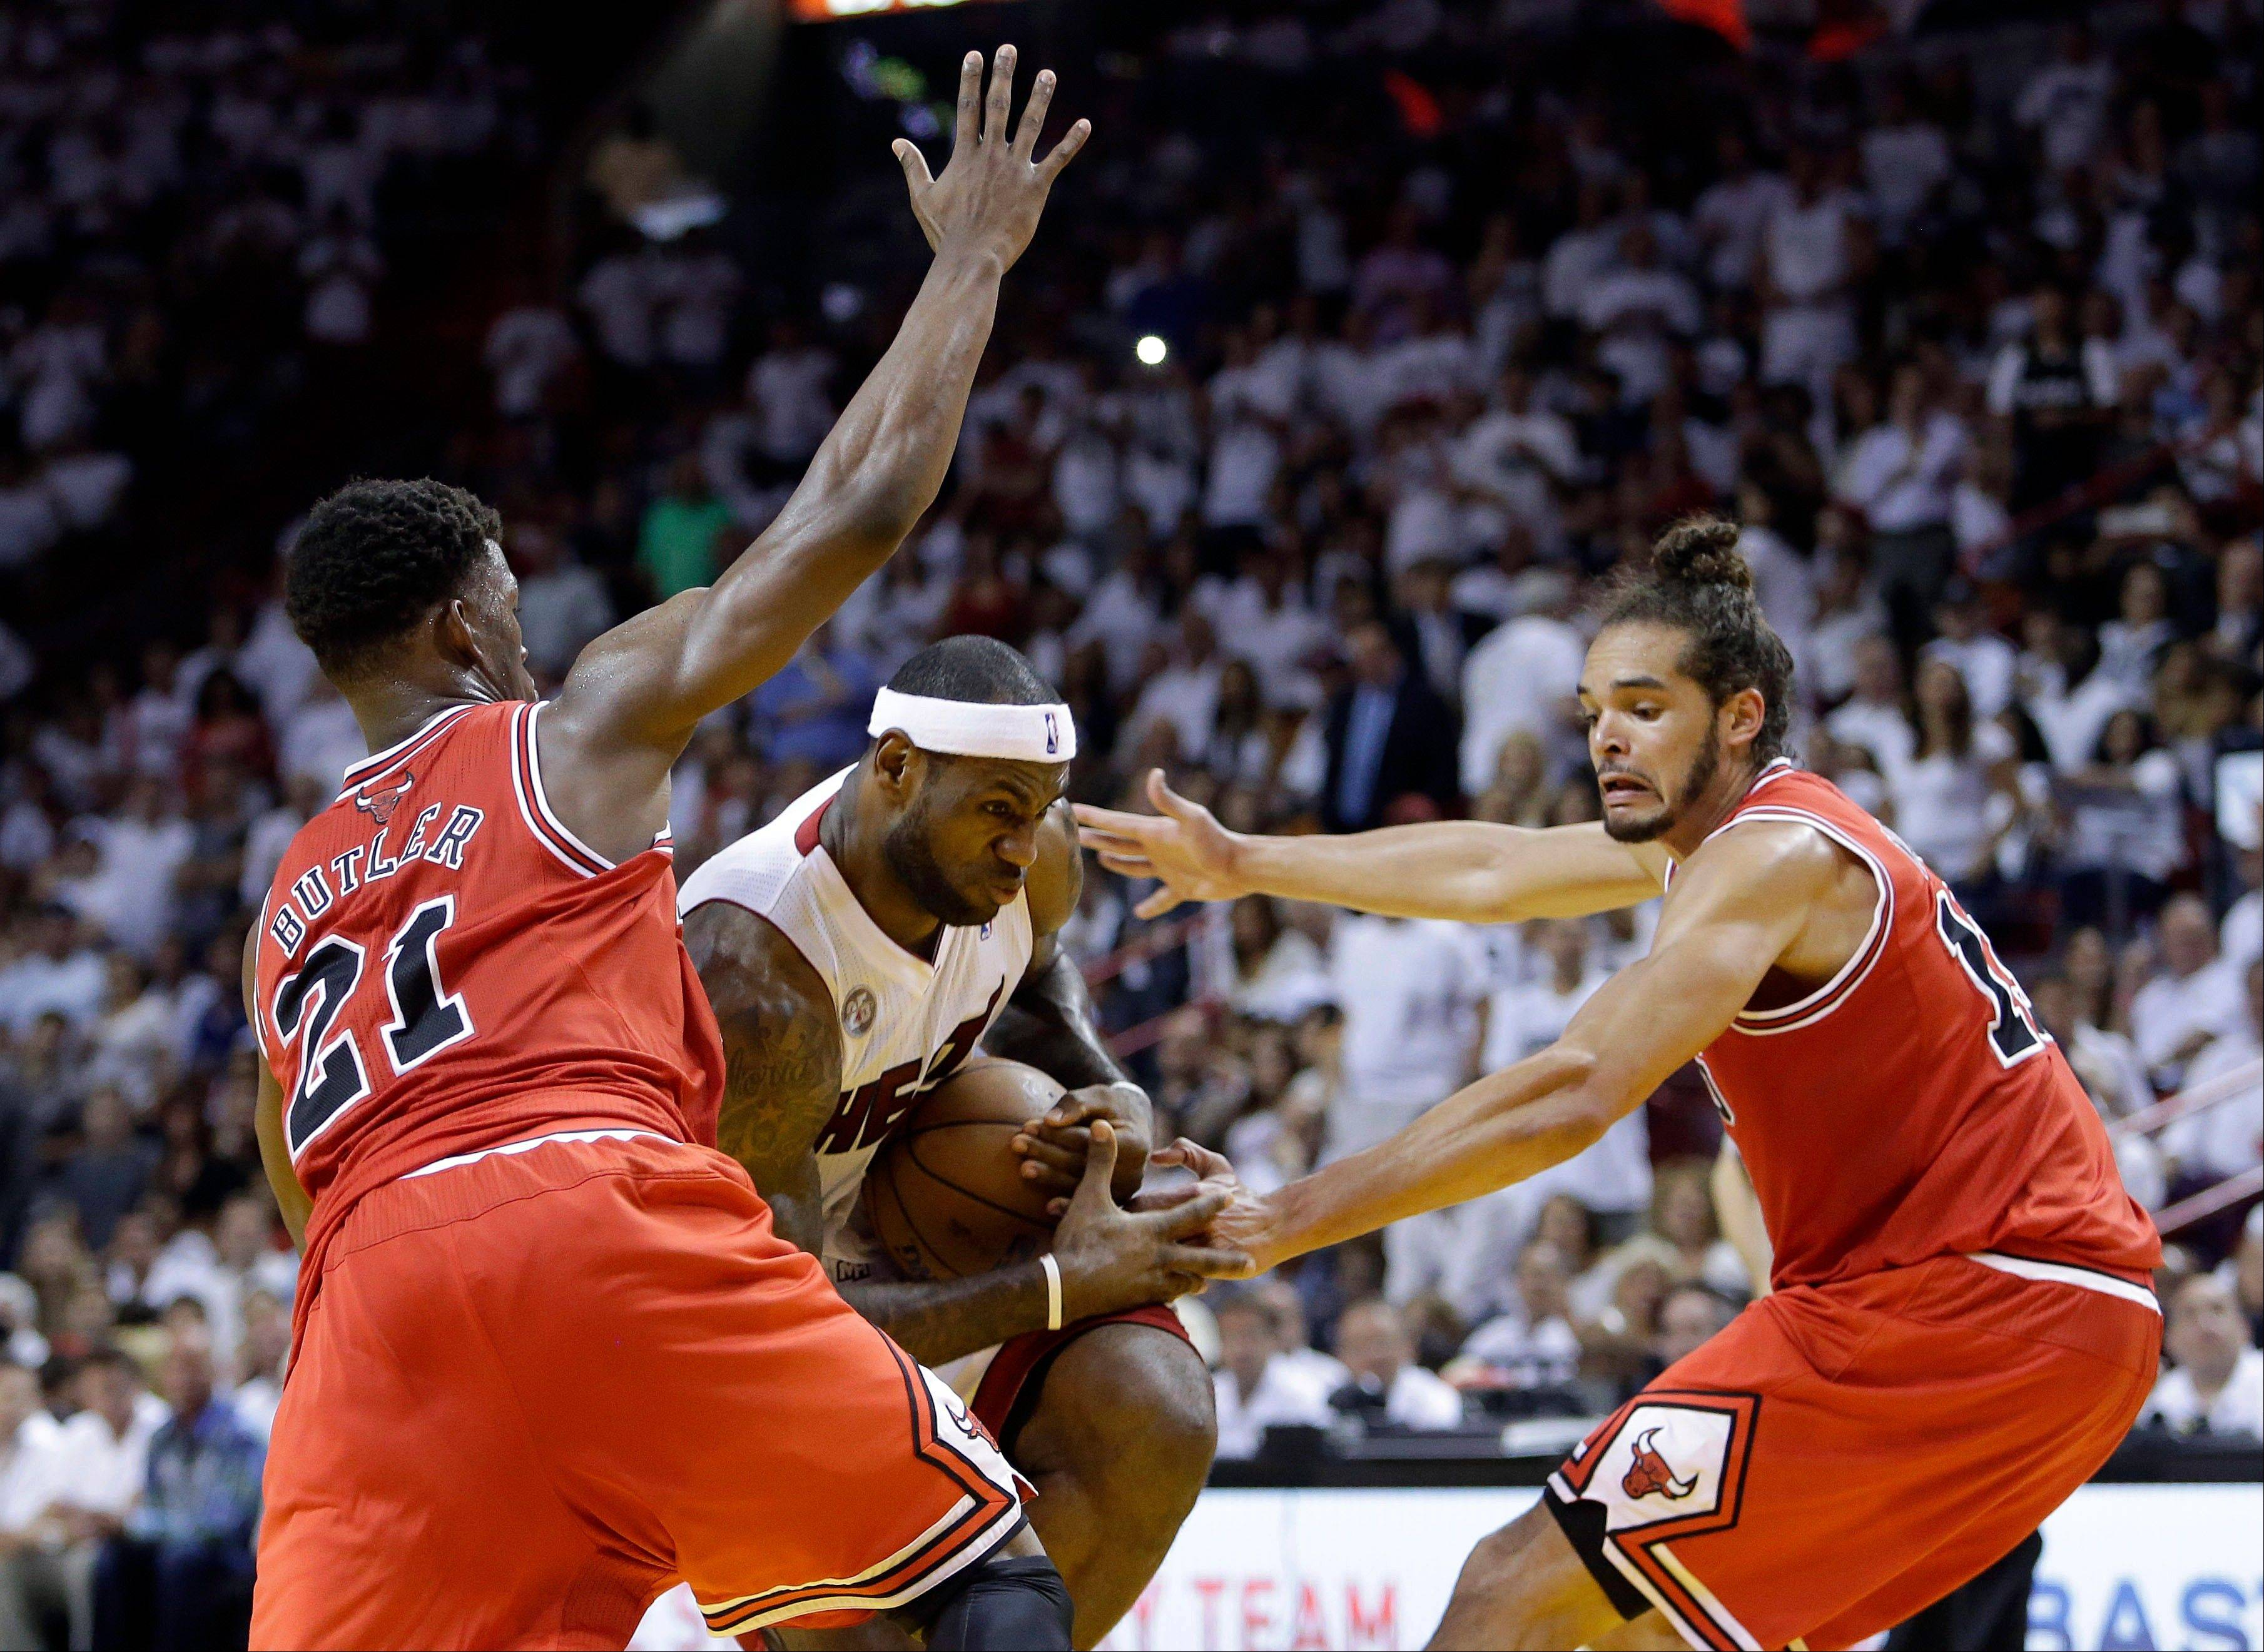 LeBron James, center, drives against Jimmy Butler (21) and center Joakim Noah, right, during the first half of Game 2 in their Eastern Conference semifinal series. Butler didn't play a full 48 minutes Wednesday, the first time that's happened since Game 5 of the Bulls' series against Brooklyn.